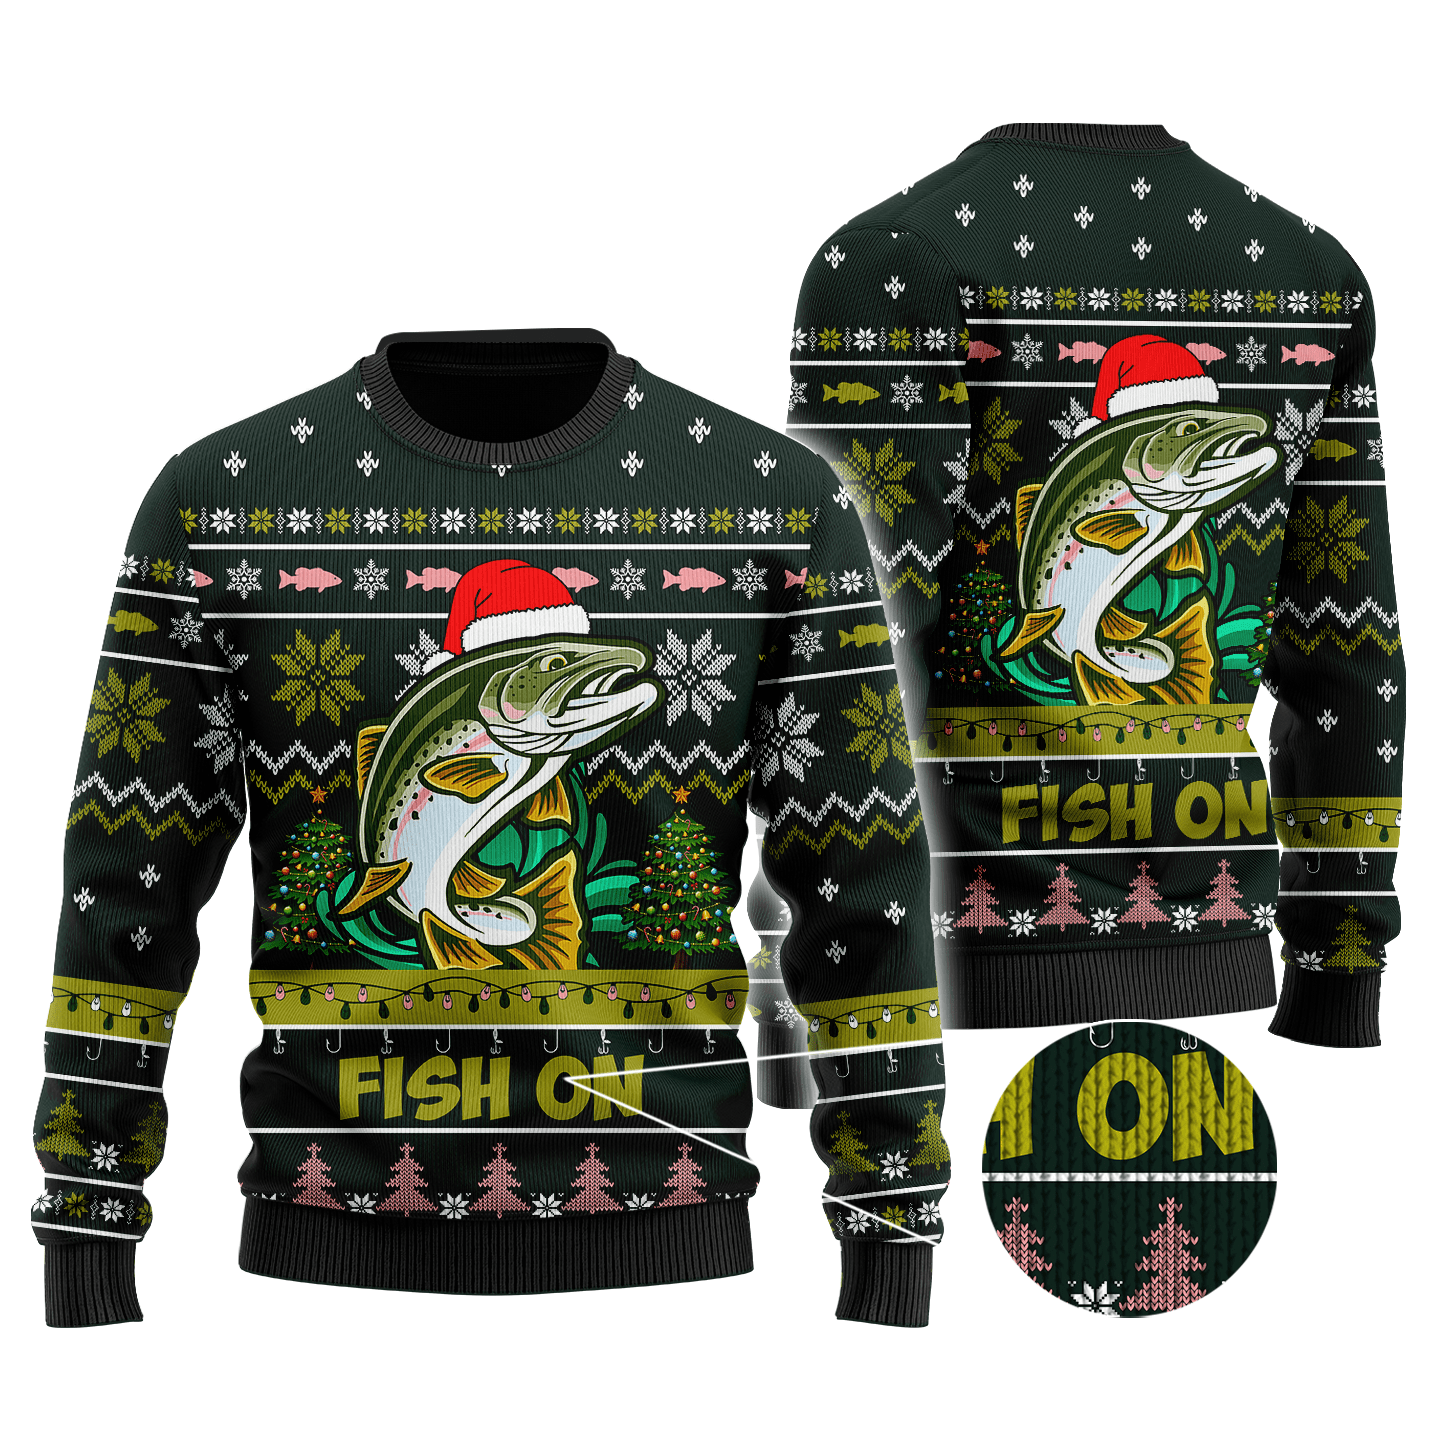 Trout Fishing Fish on Christmas Hat Knitted Sweater